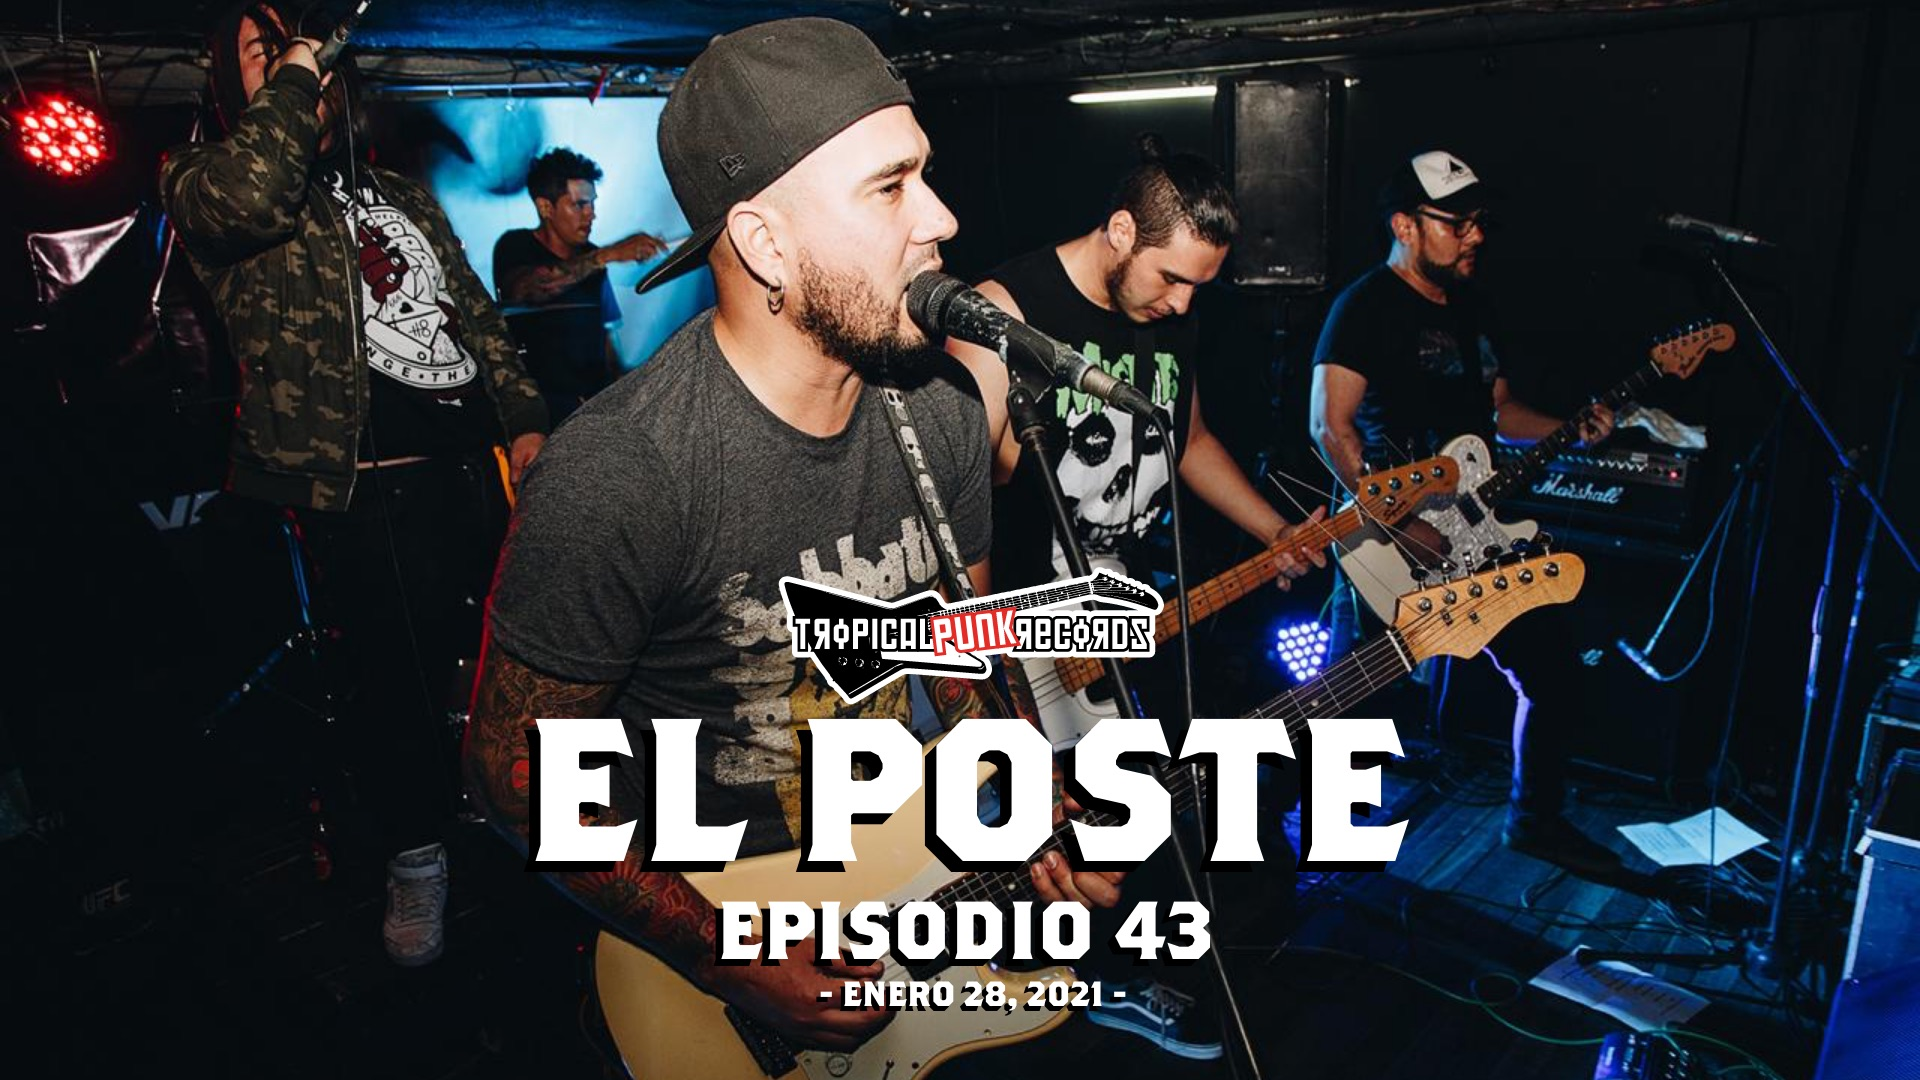 El Poste episodio 43 con Torre, Los De Greiff, Dexkoncierto, Psycopath Billy y Sin Compromiso | Neo Travel Cast, un podcast de Tropical Punk Records